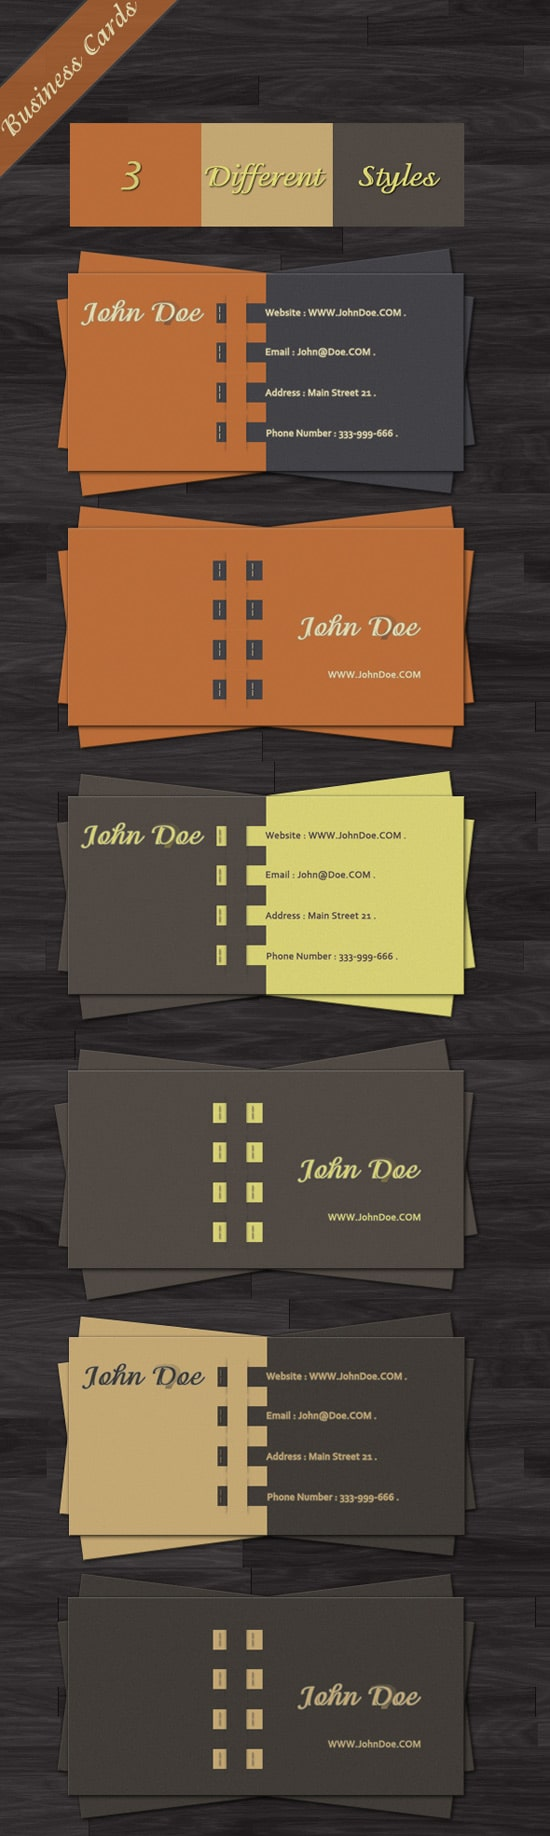 100 free business card templates designrfix business is business free psd vector business card wajeb Choice Image